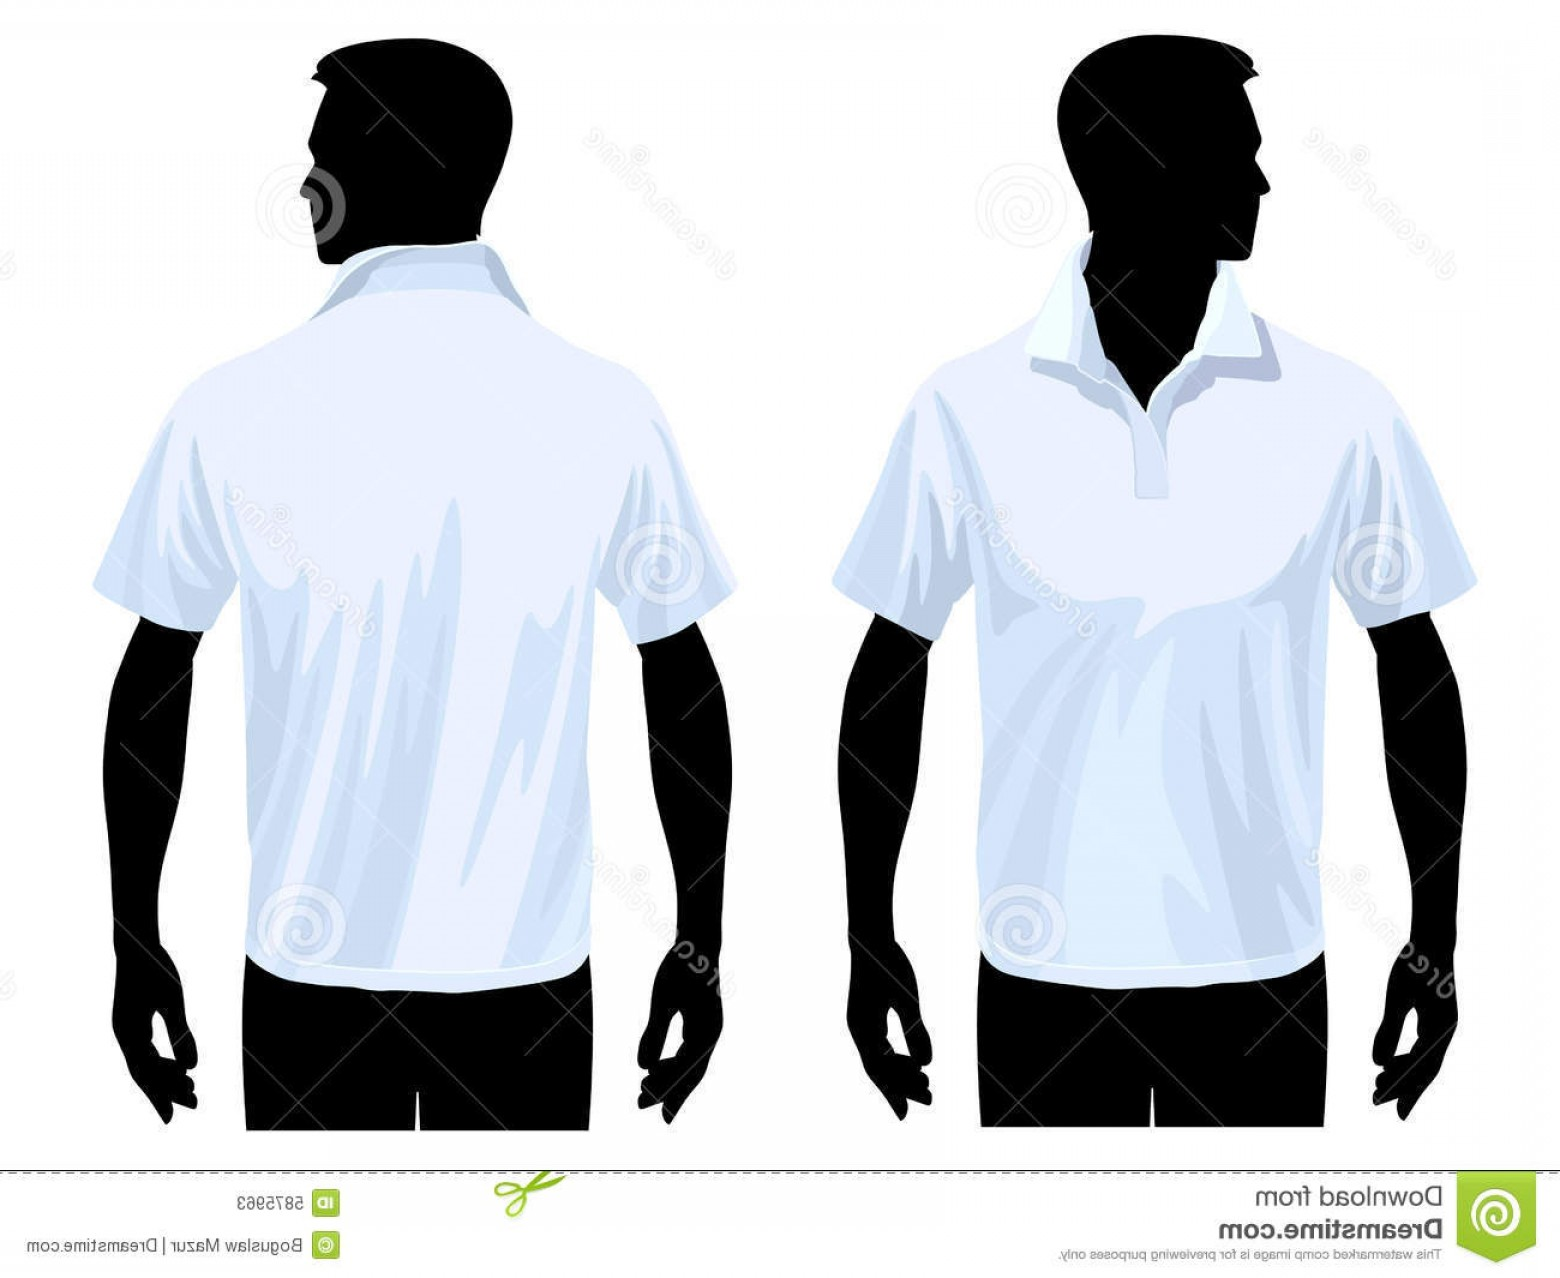 Vector Pocket Silhouette Shirt: Stock Photos Polo Shirt Template Image